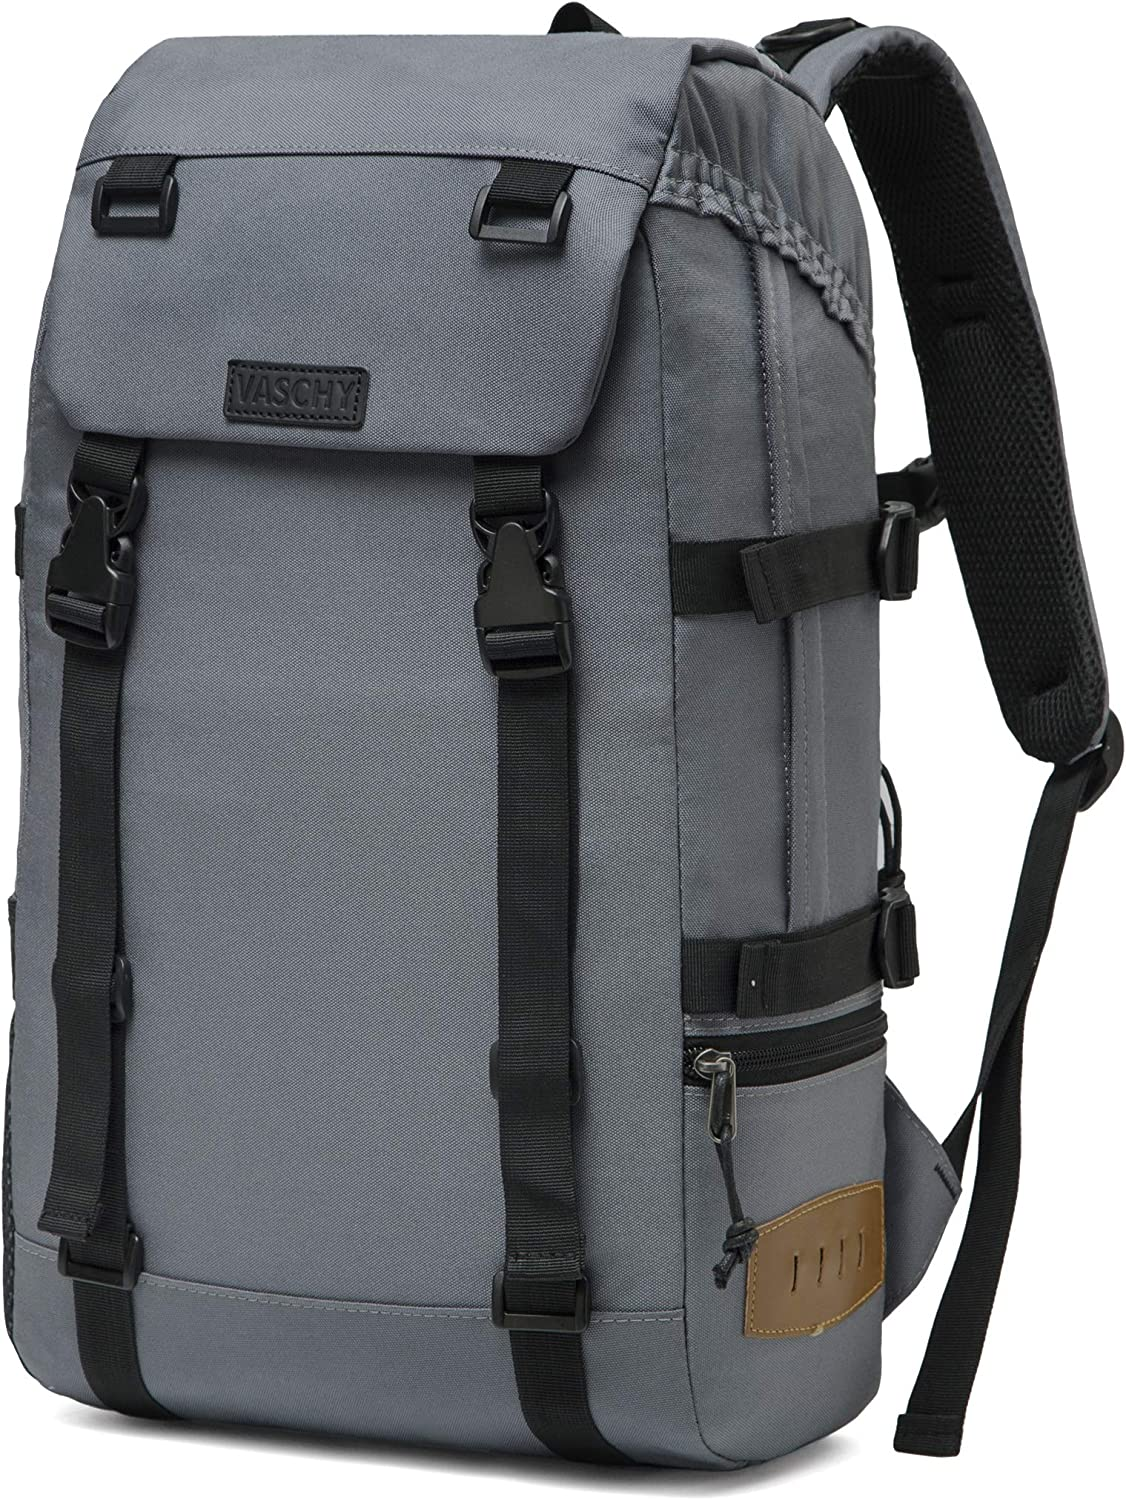 Vaschy Camping Hiking Rucksack Daypack Casual High School Backpack fits 15 in Laptop Black